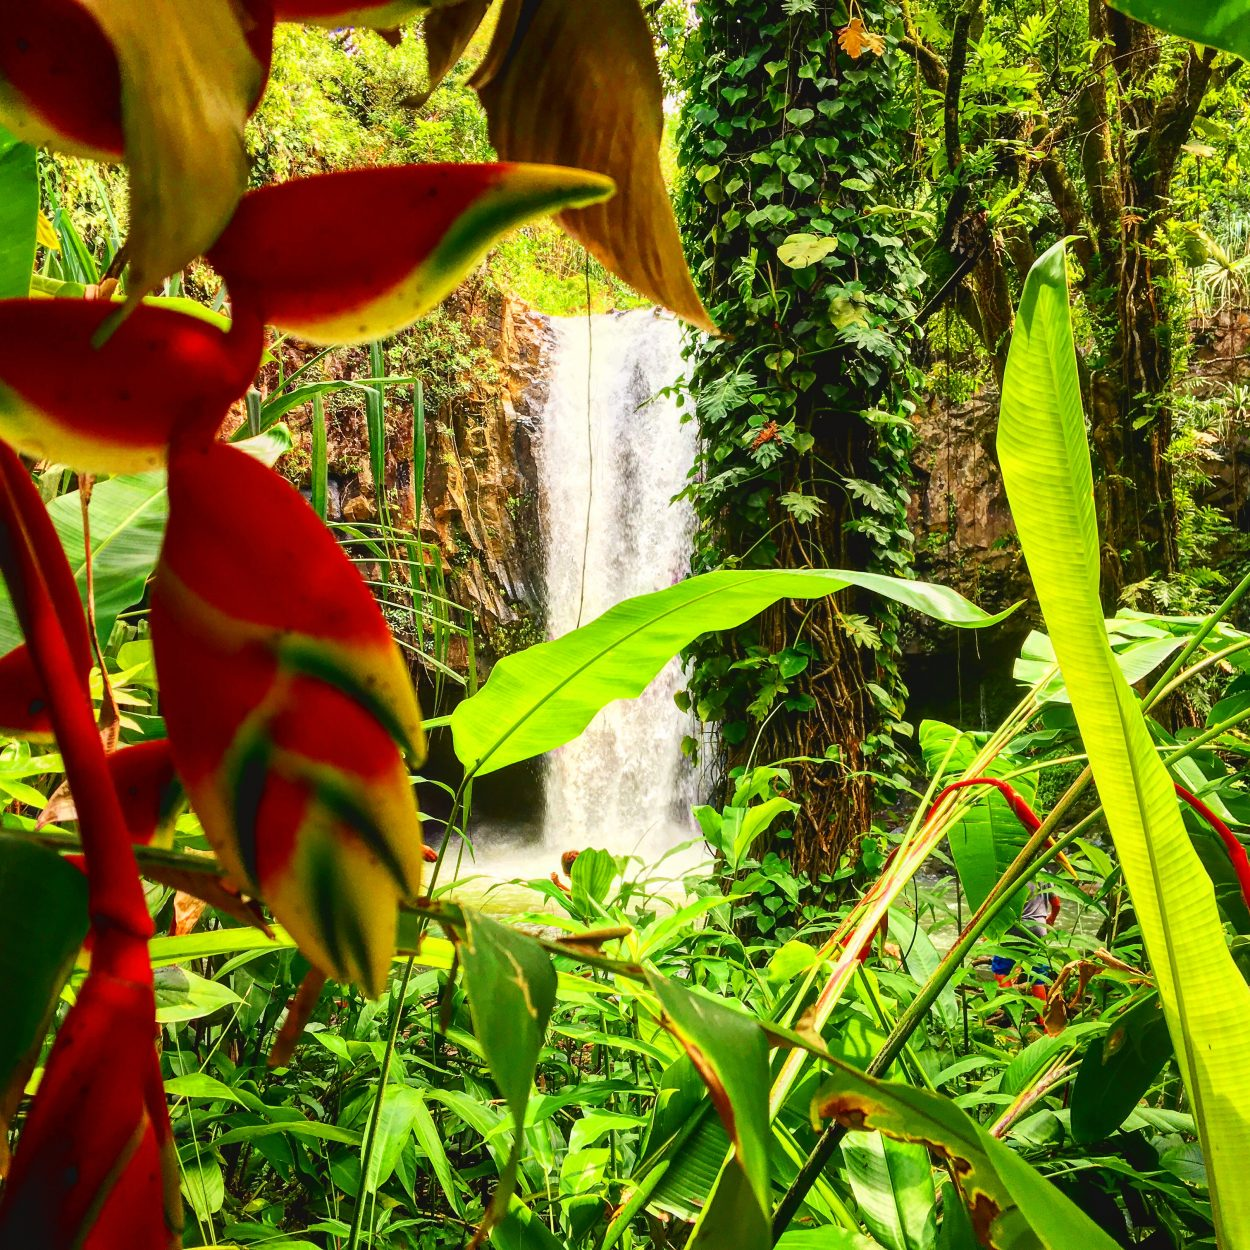 Blue_Soul_Maui_Private_Tour_Hana_Waterfall_6.jpeg